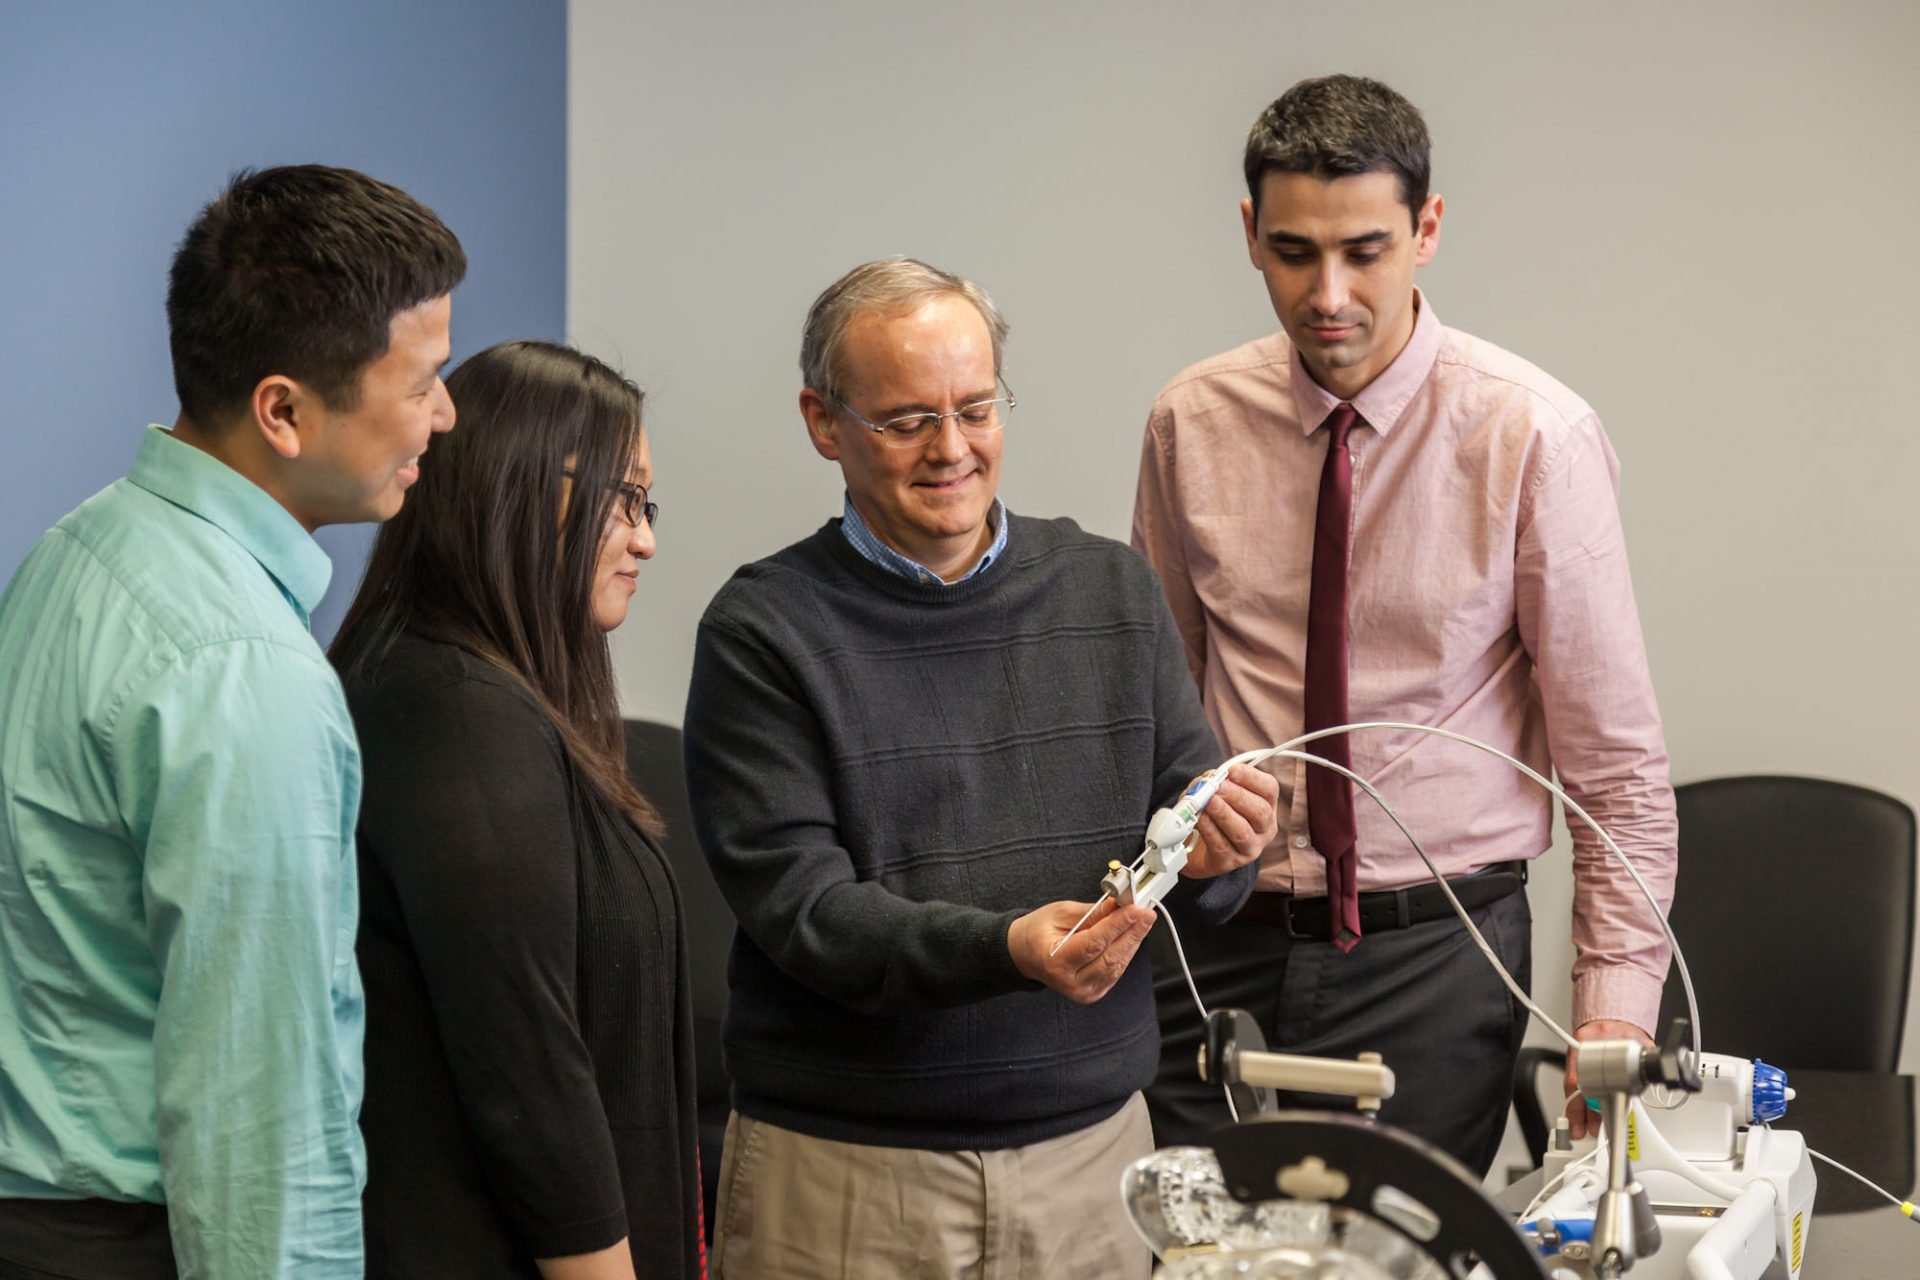 Medical Device Demonstration Photography